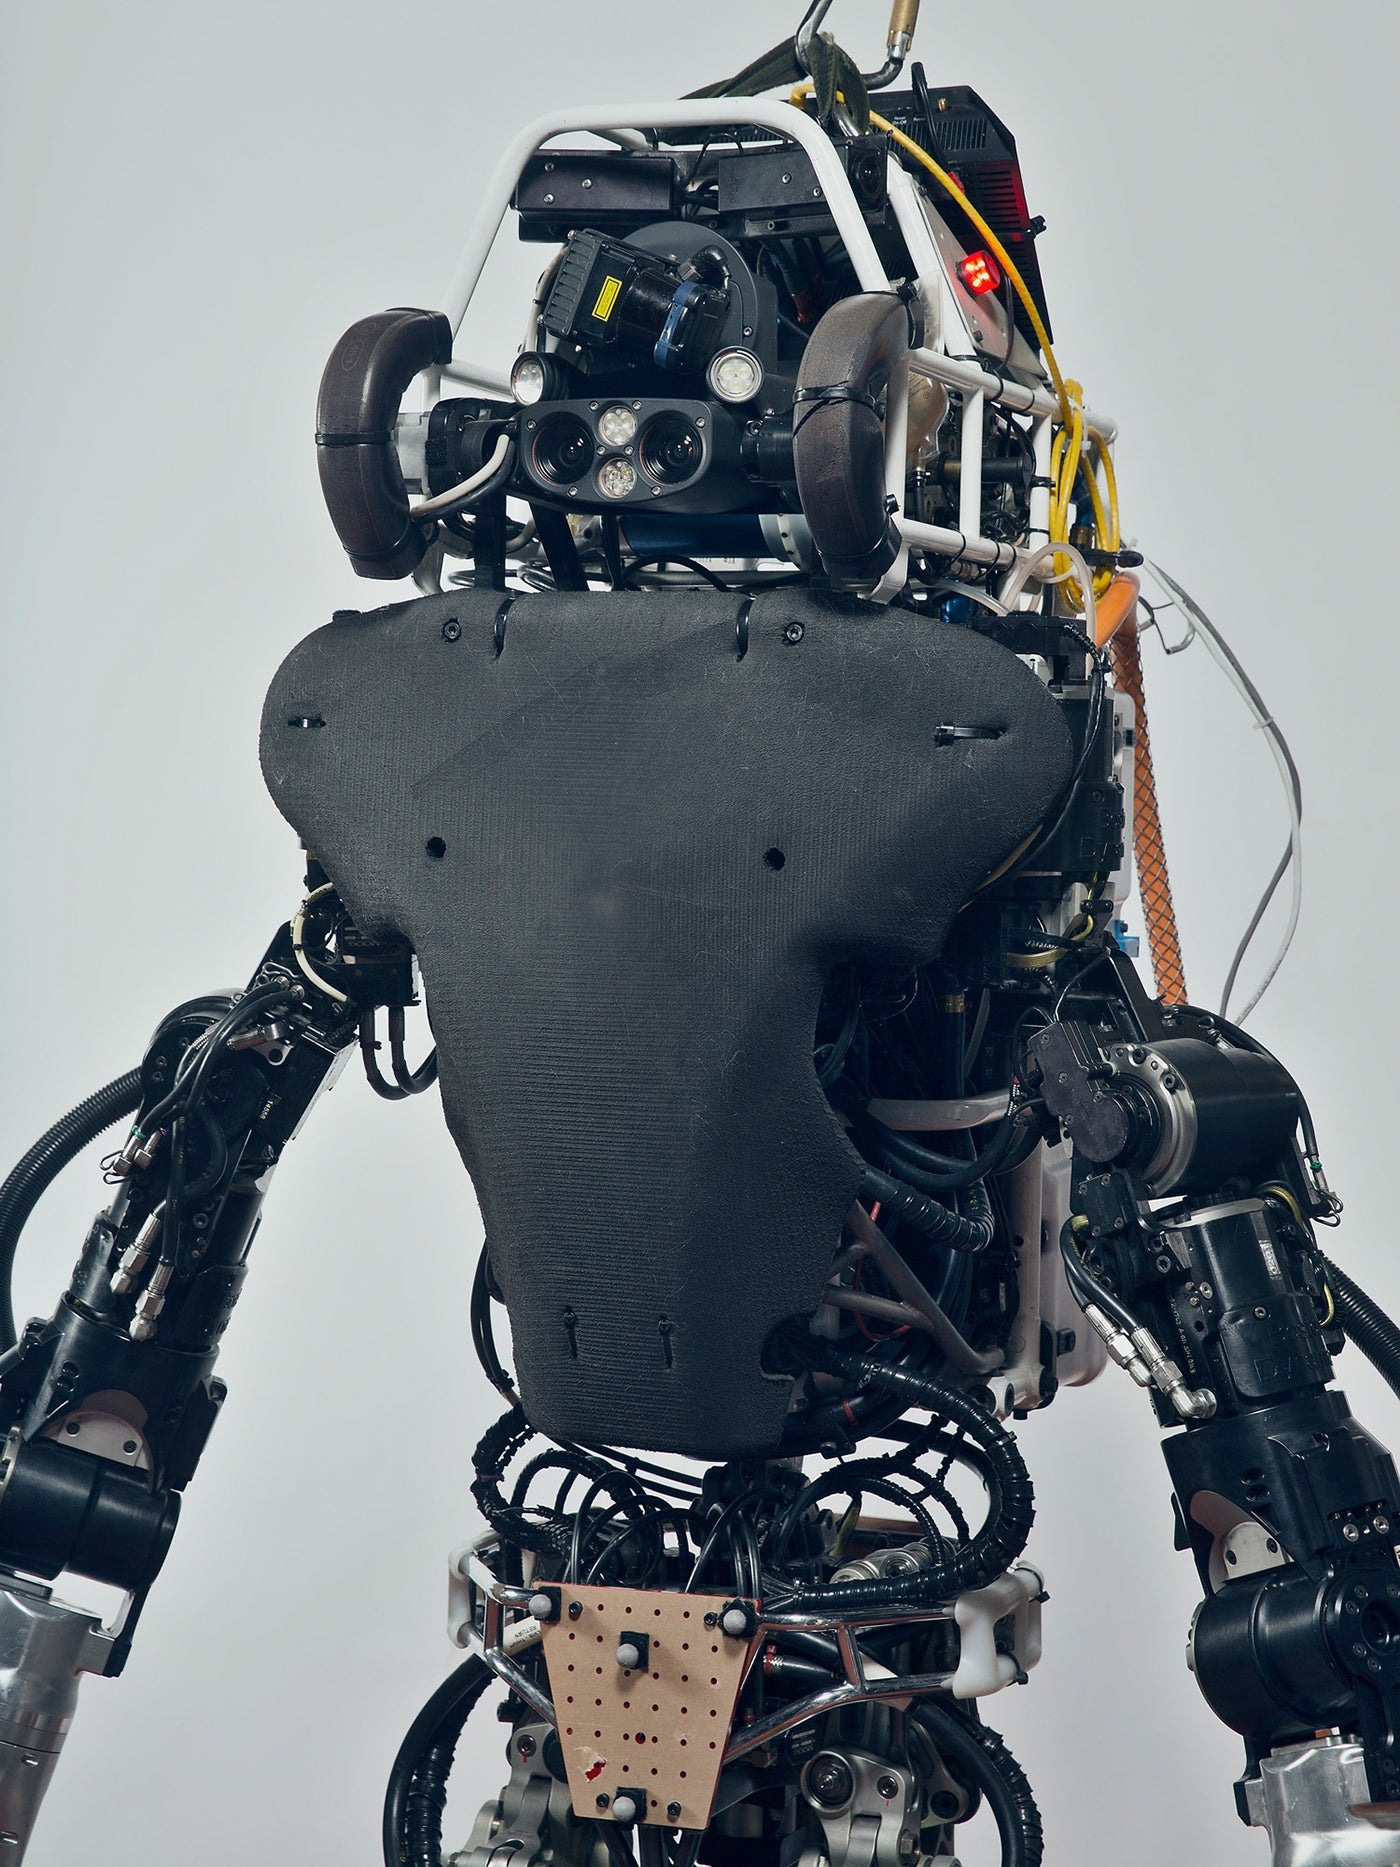 Atlas the robot. Designed to assist humans in responding to natural and human-made disasters. Photo by Mattia Balsamini